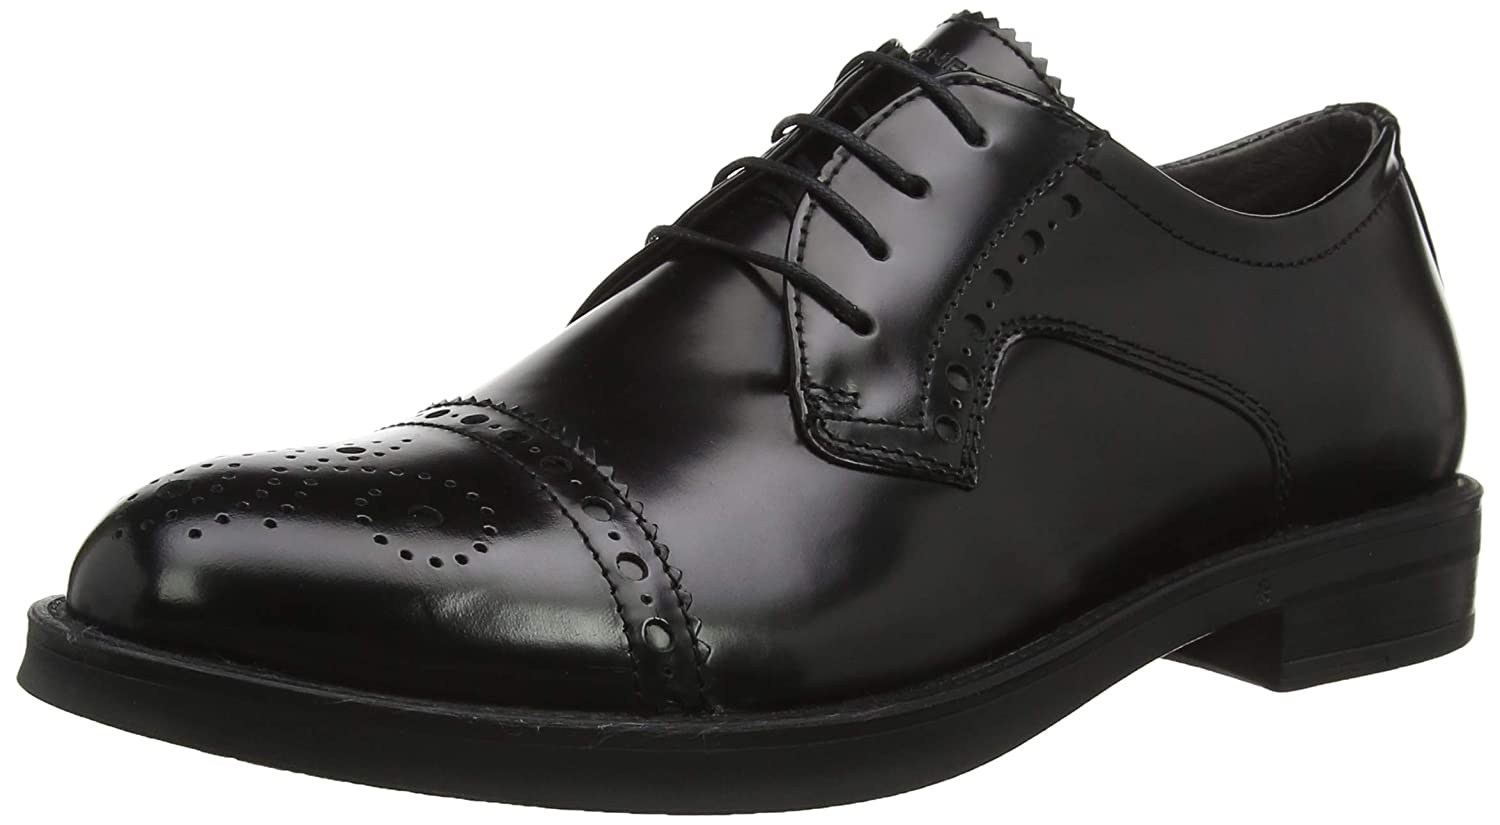 TALLA 42.5 EU. Stonefly Class II 1 Brush Off, Zapatos de Cordones Brogue para Hombre